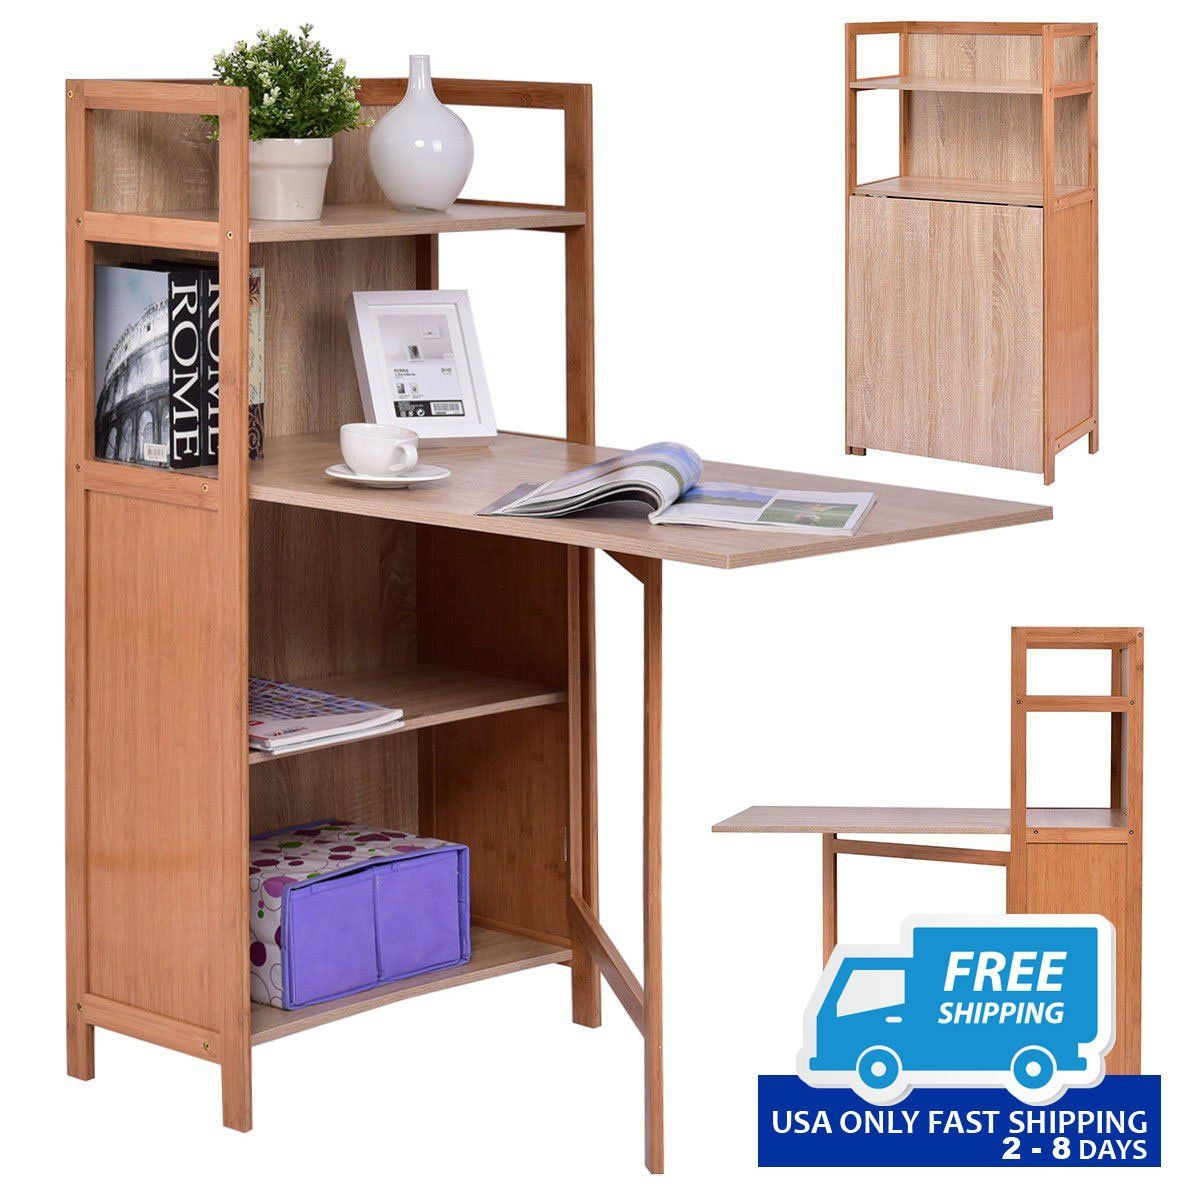 2 In 1 Convertible Wood Folding Desk Cabinet With Bookshelf Desk Cabinet Convertible Desk Computer Desk With Shelves